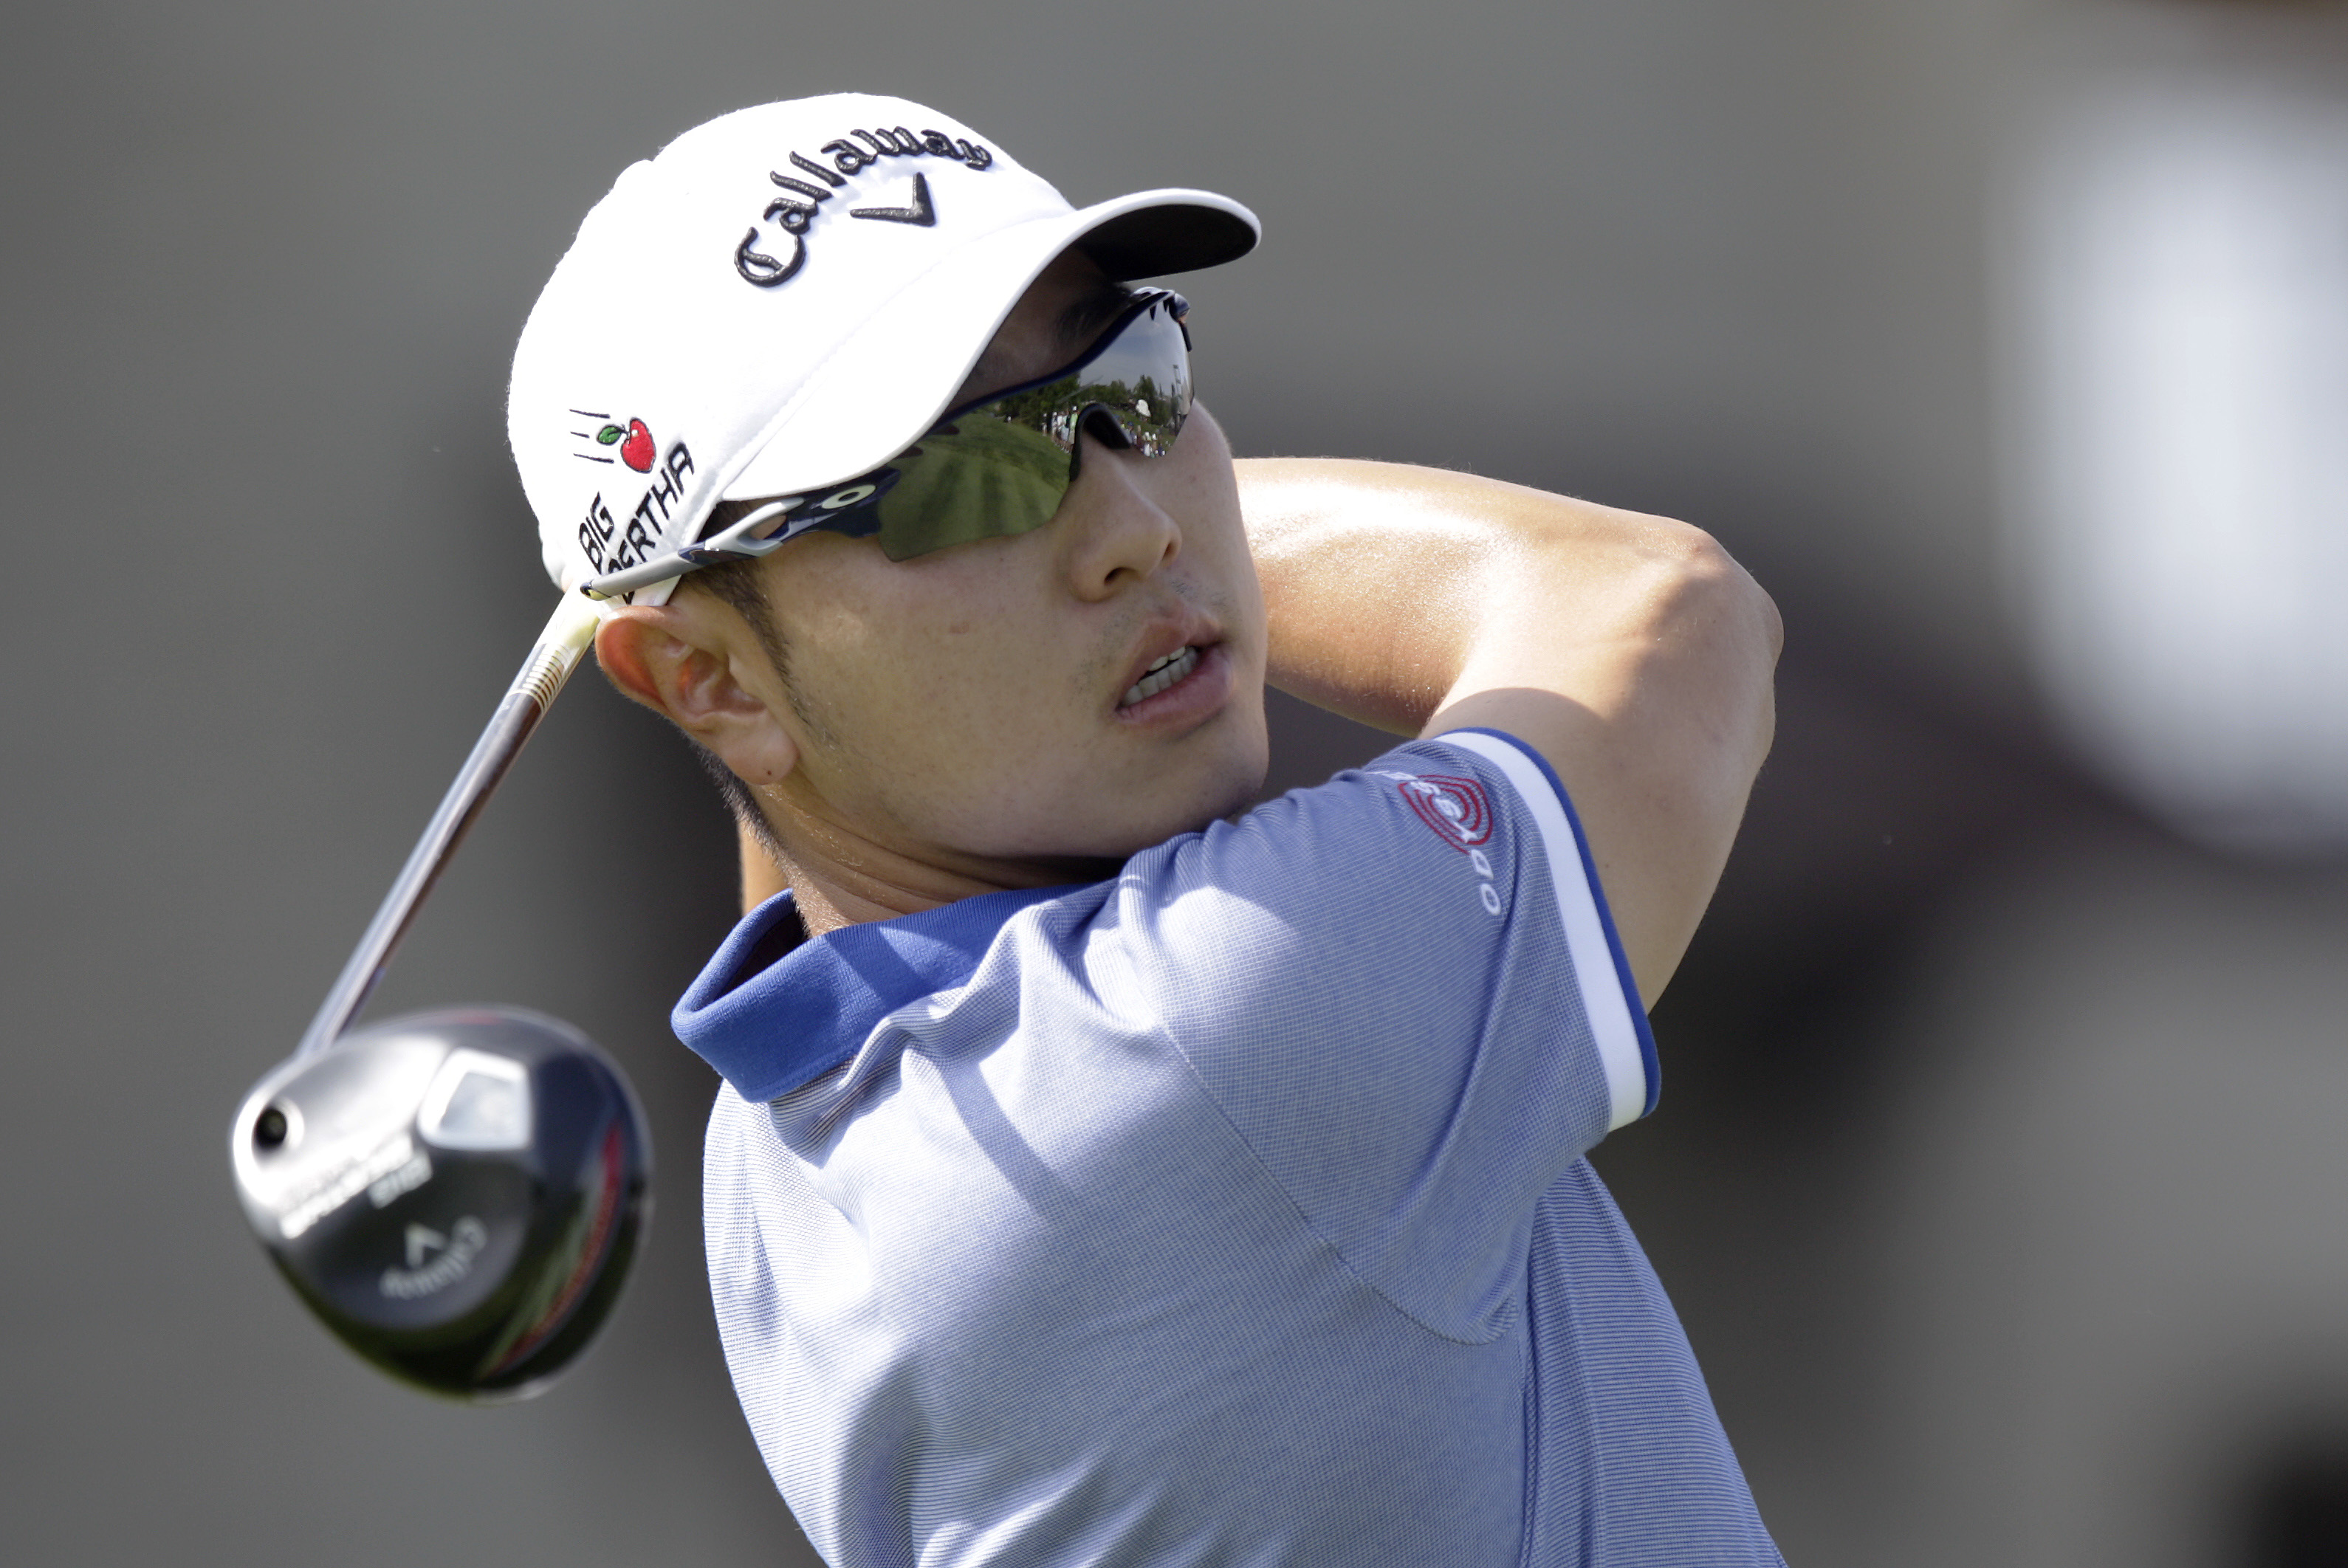 Bae Sang-moon, of South Korea, tees off on the 10th hole during the second round of the Memorial golf tournament Friday, June 5, 2015, in Dublin, Ohio. (AP Photo/Jay LaPrete)